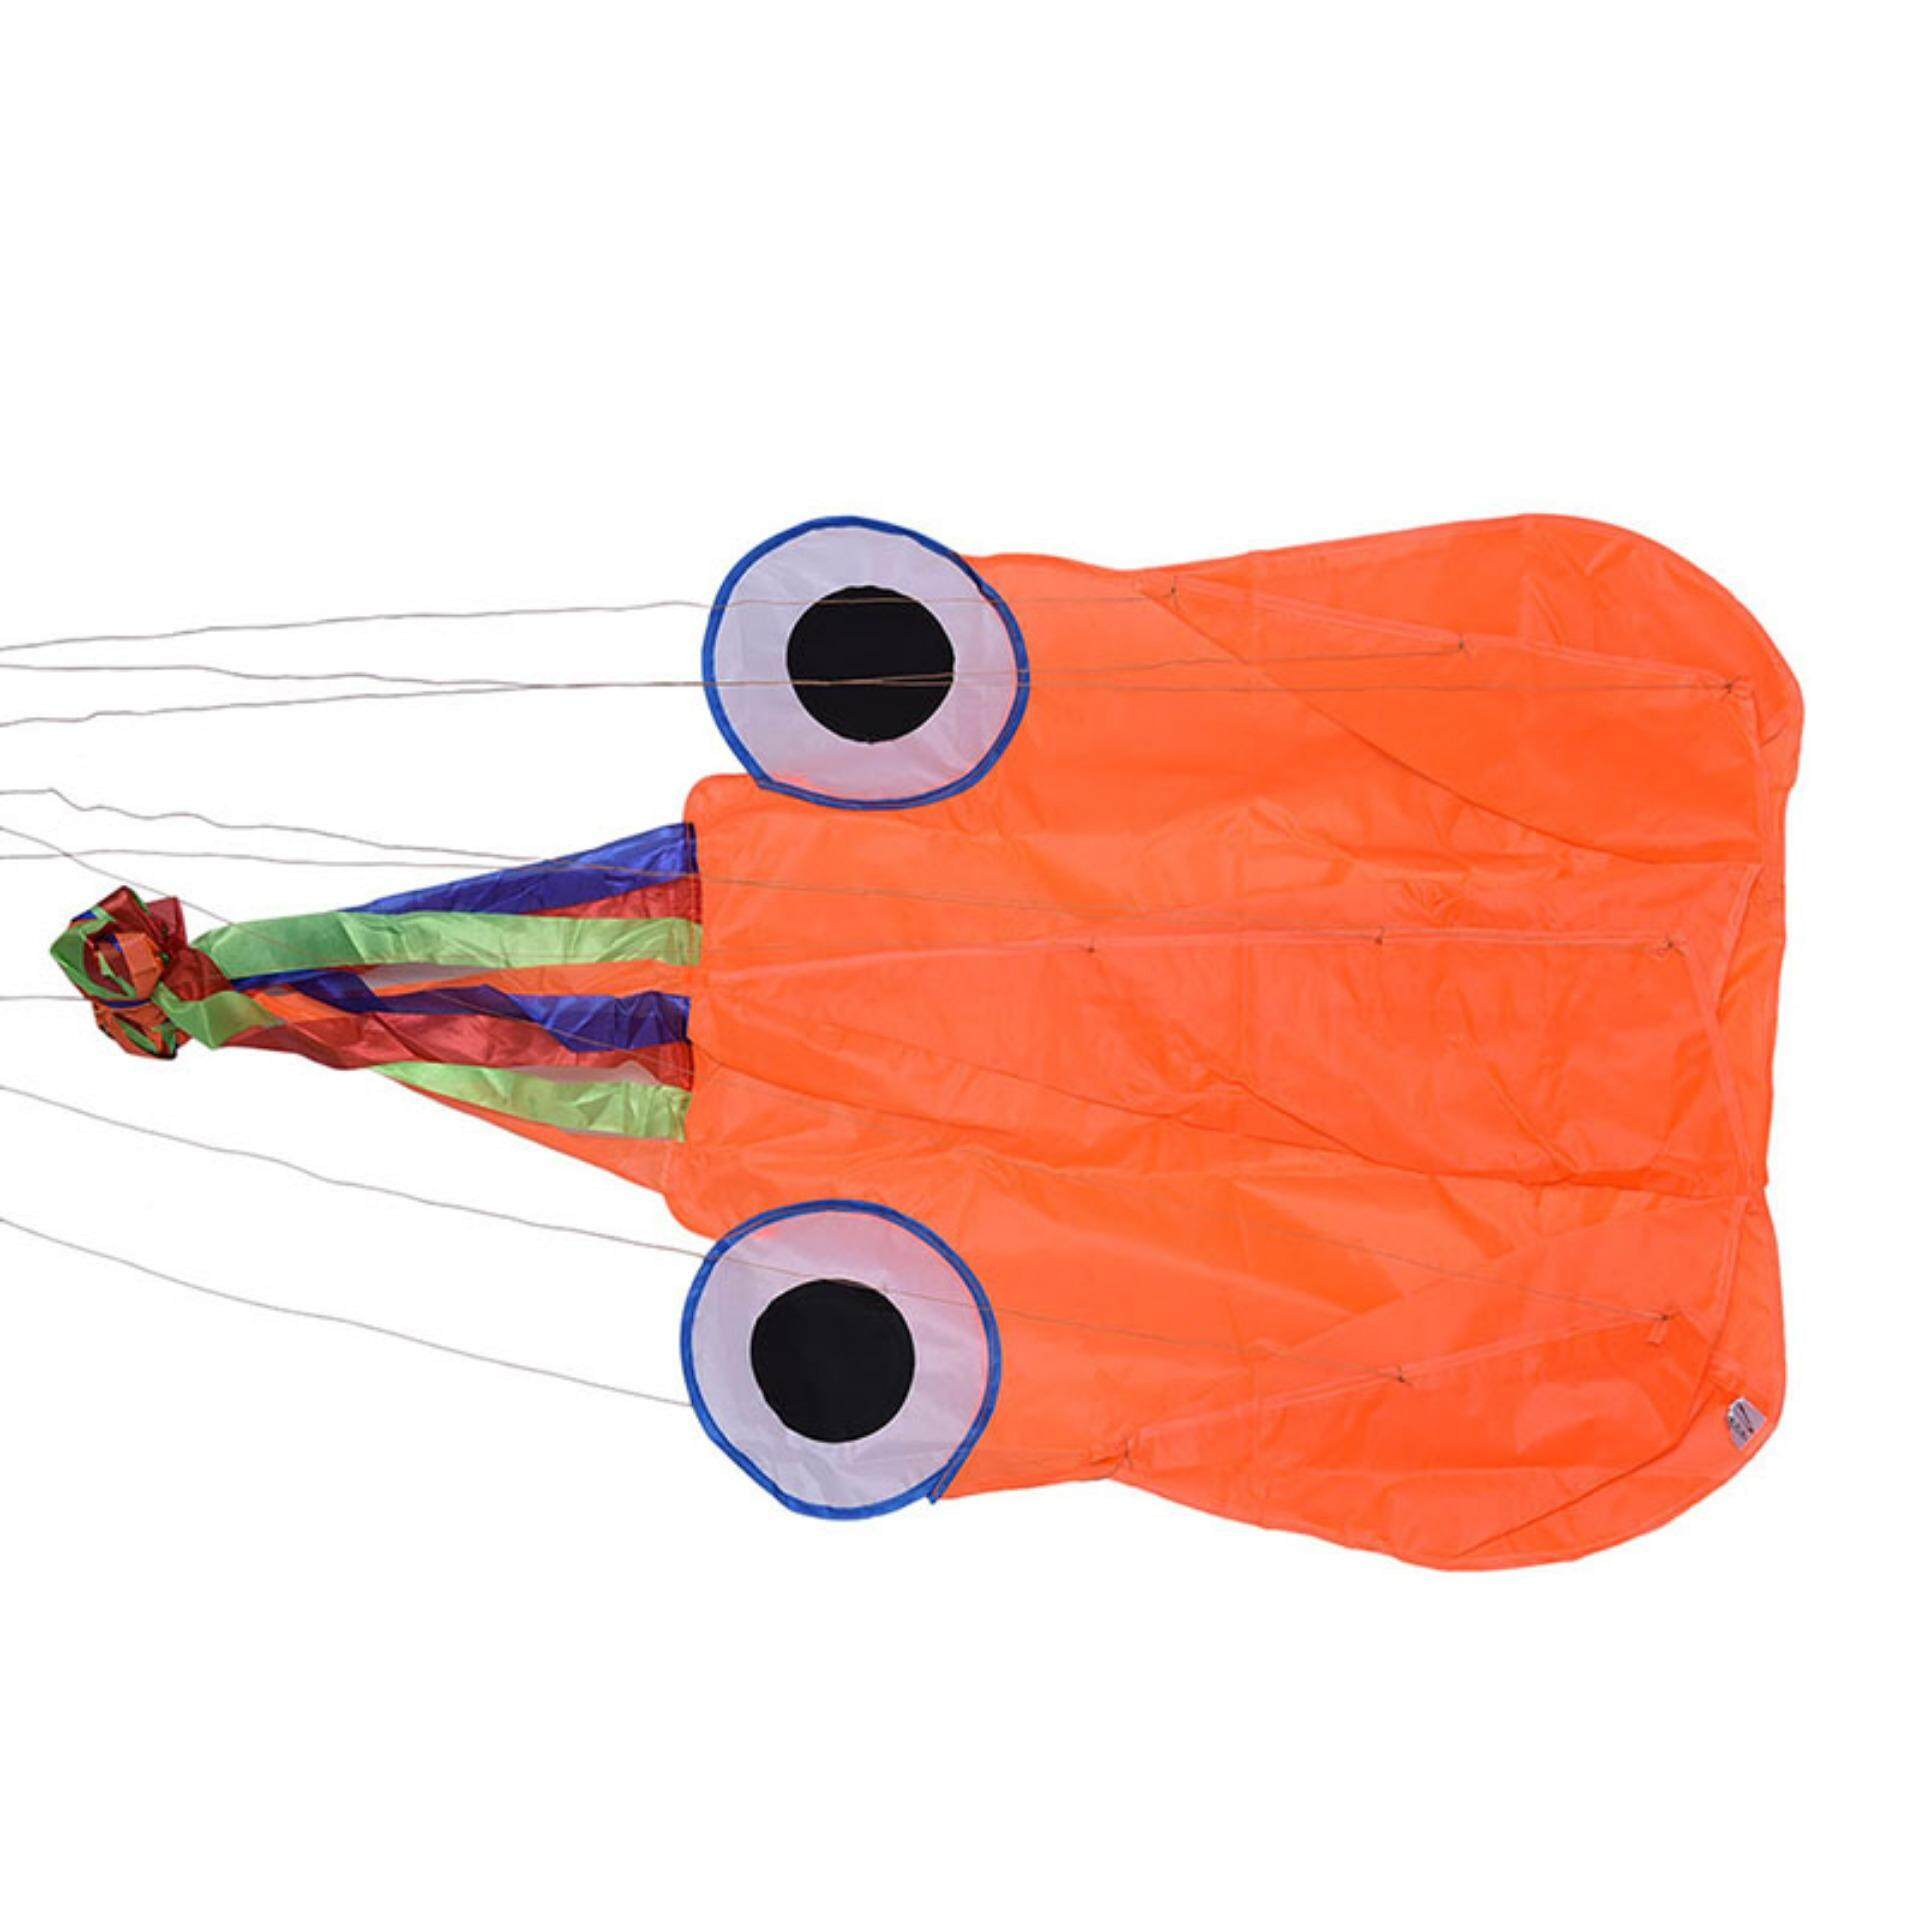 4M Single Line Stunt Red Octopus Power Sport Flying Kite Outdoor Toy - intl